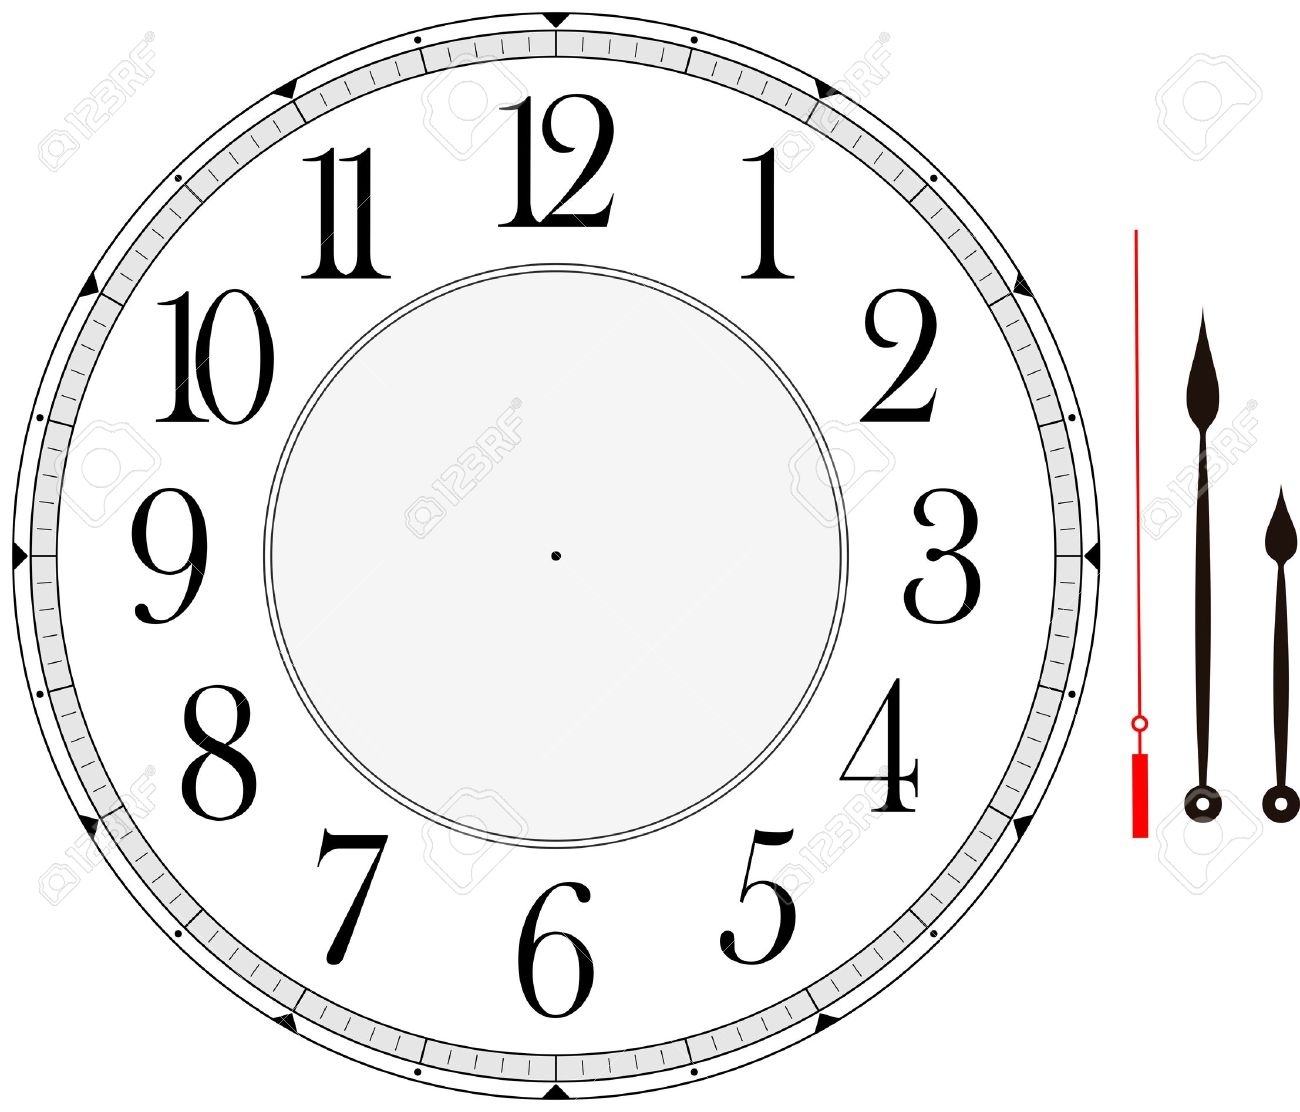 Clock Face Template With Hour Minute And Second Hands To Make – Clock Face Template